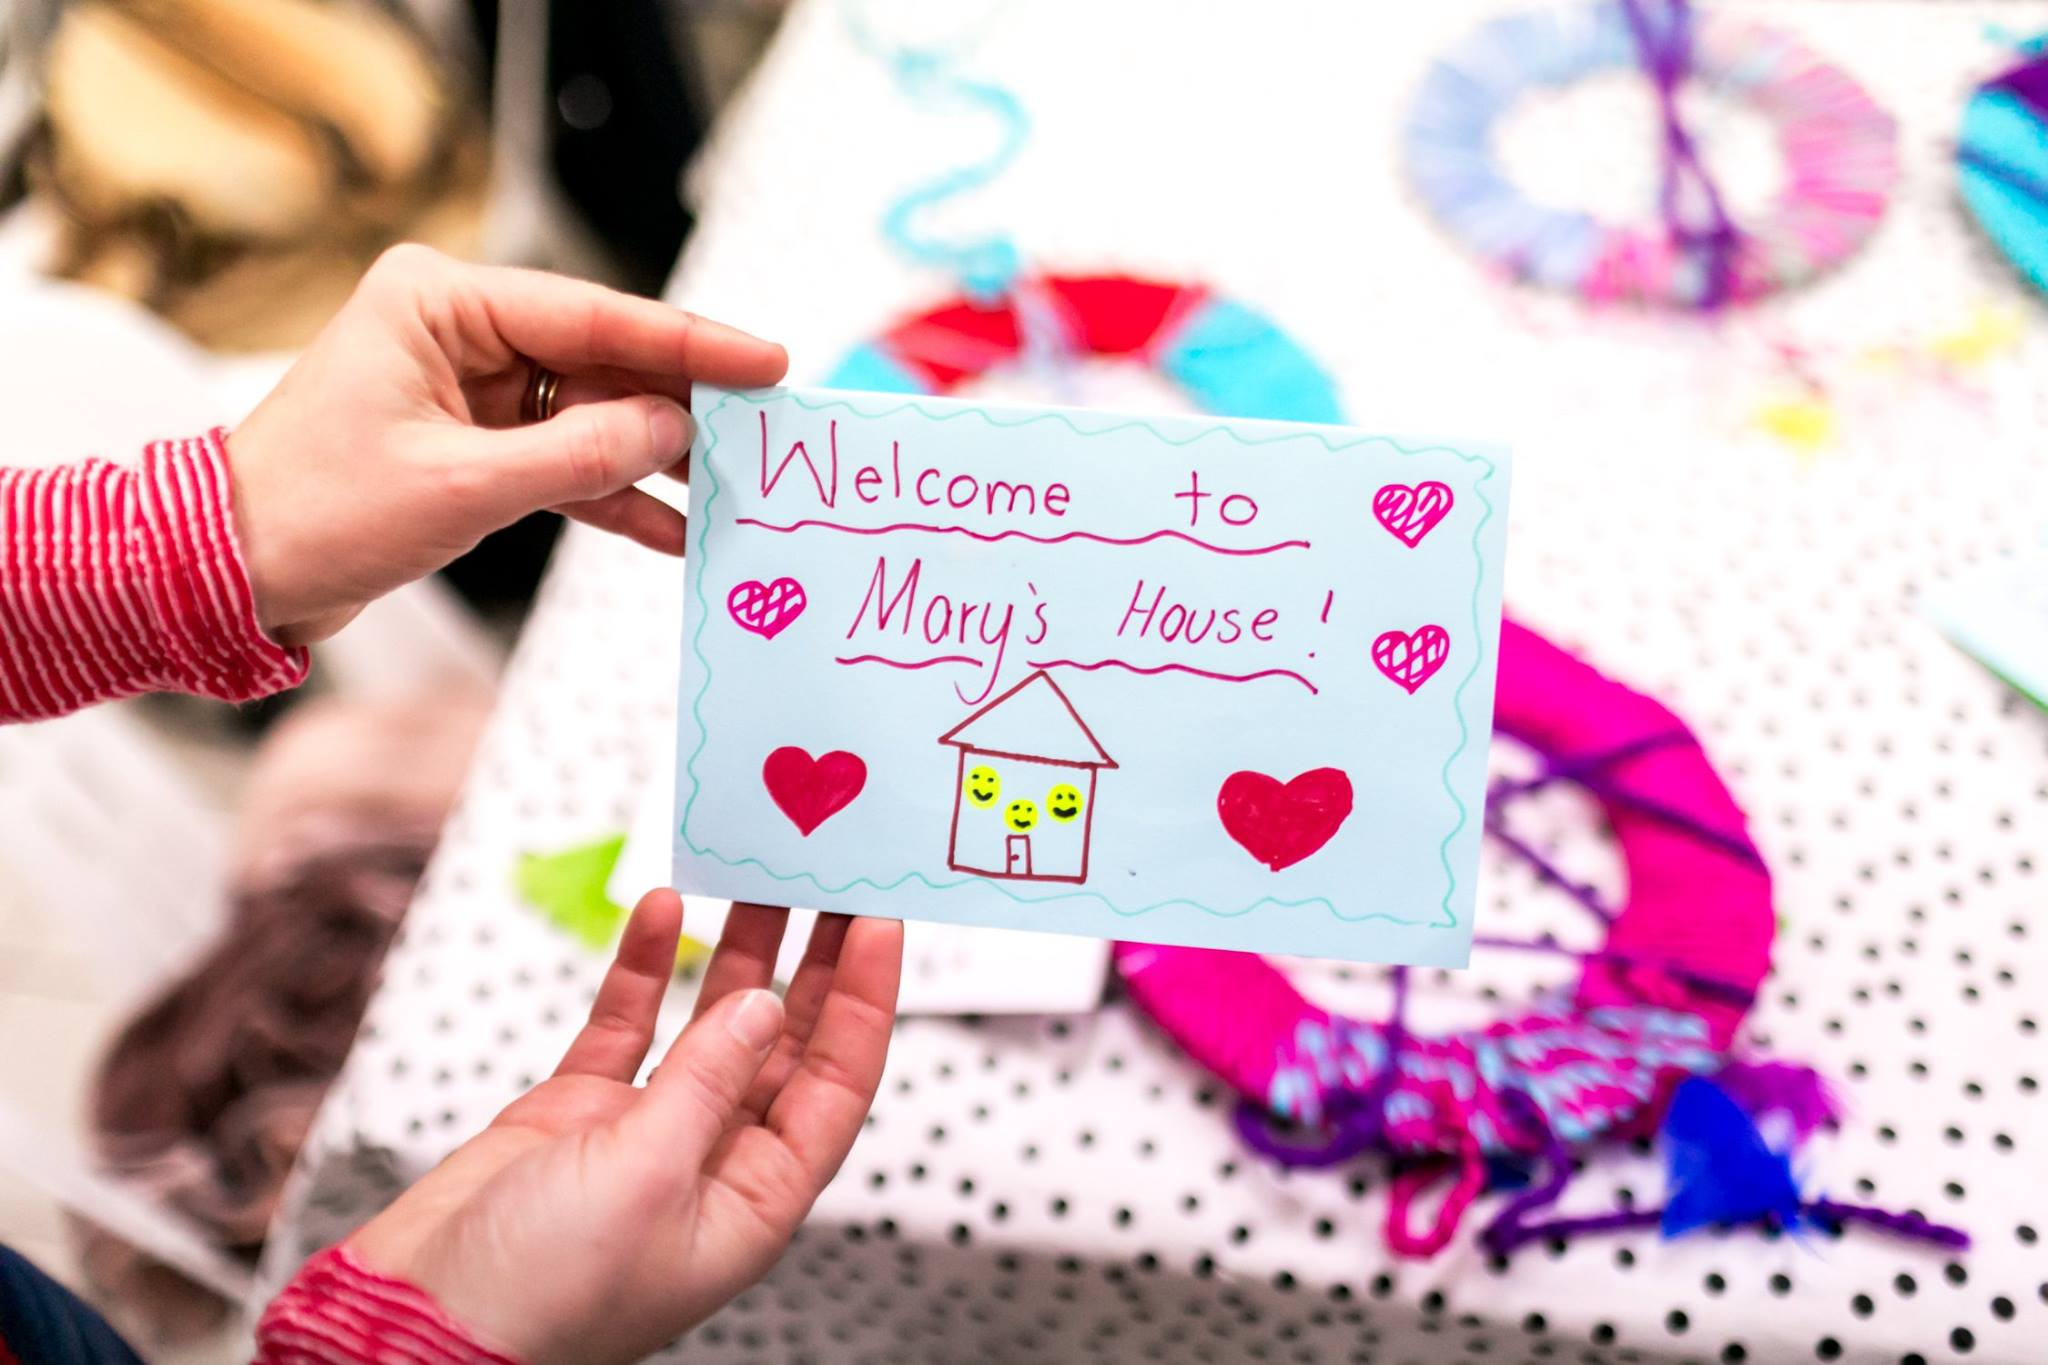 An incredible example of a welcome card made by kids